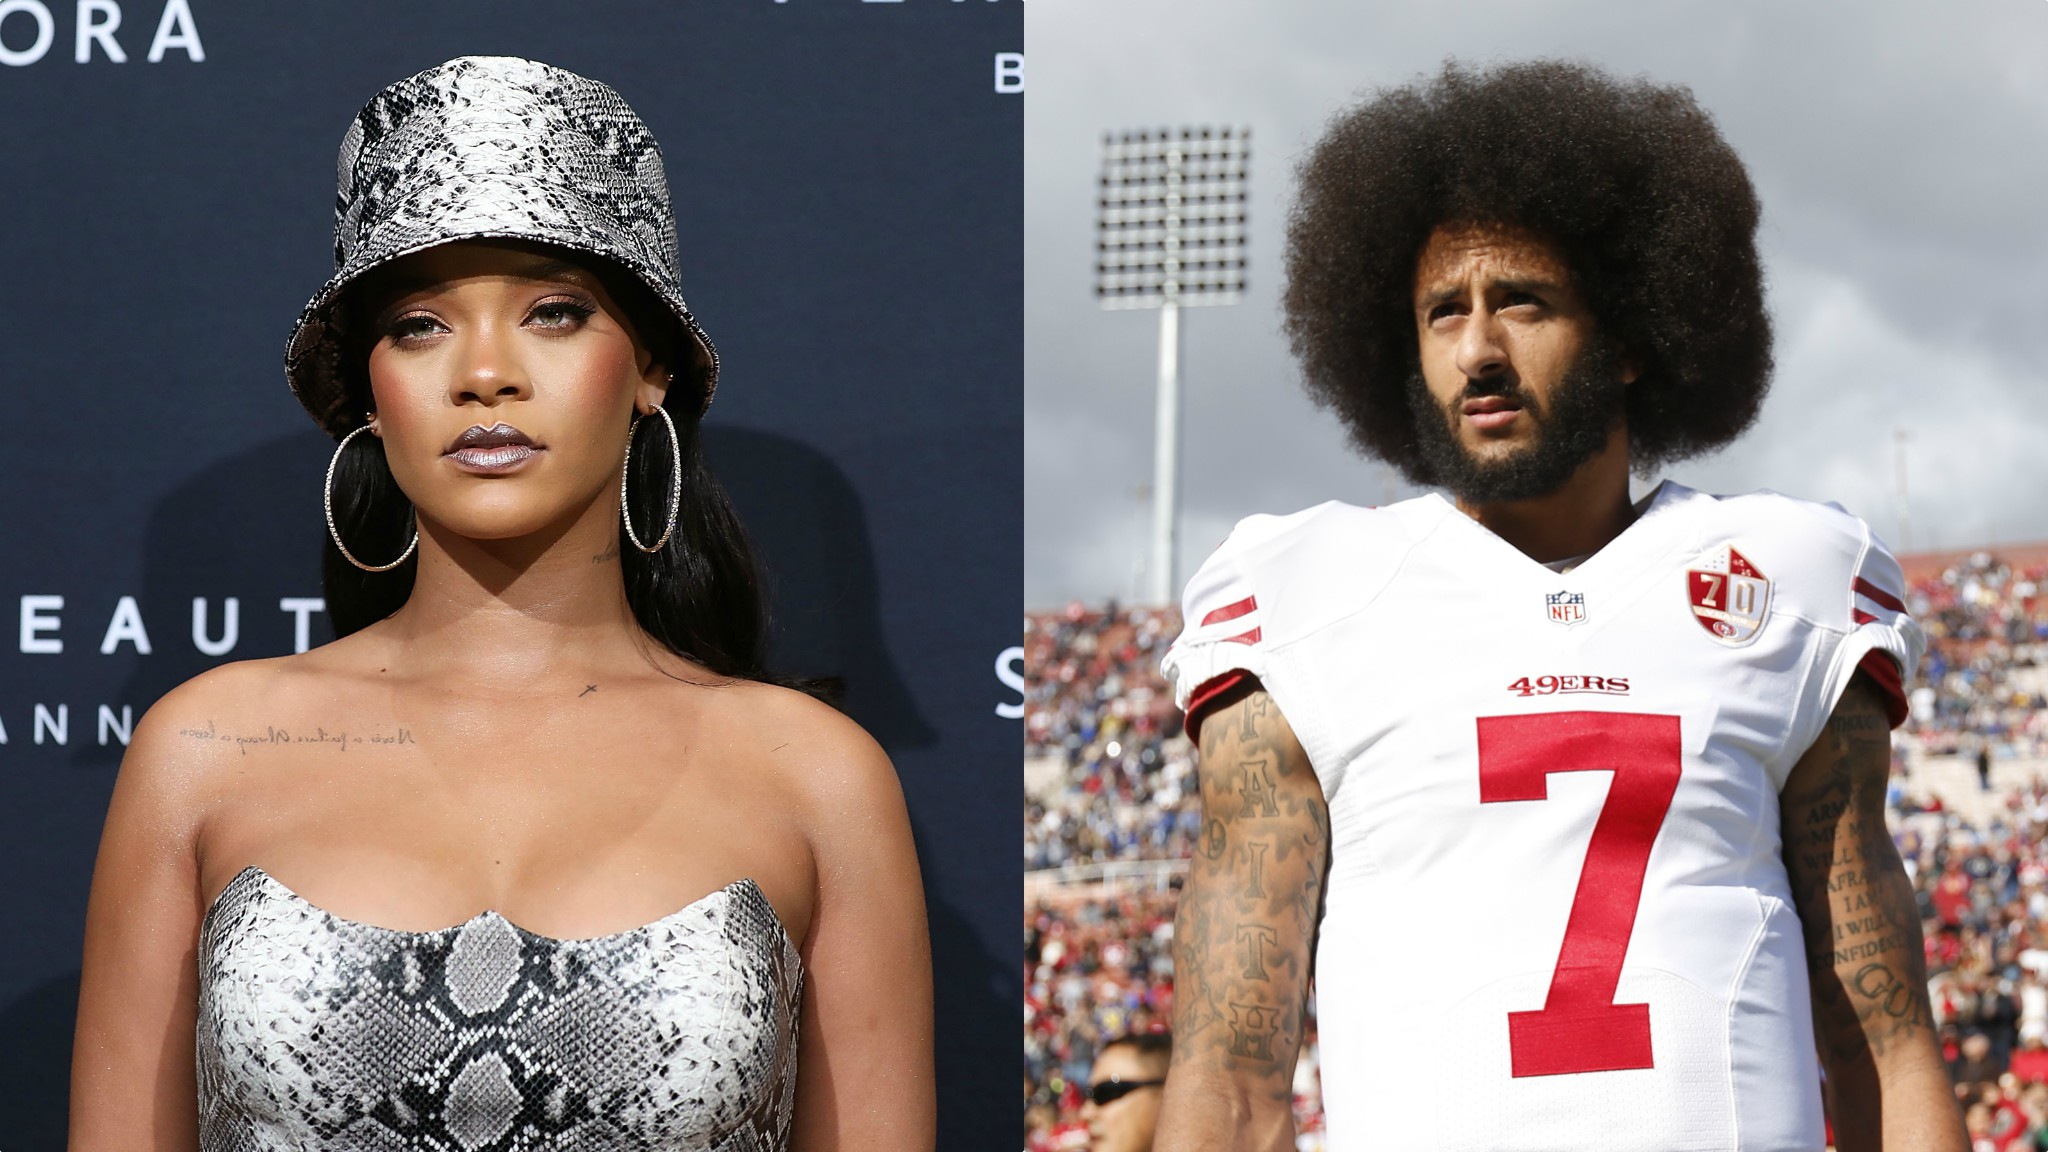 Colin Kaepernick: Rihanna 'declined Super Bowl invitation in support of quarterback'